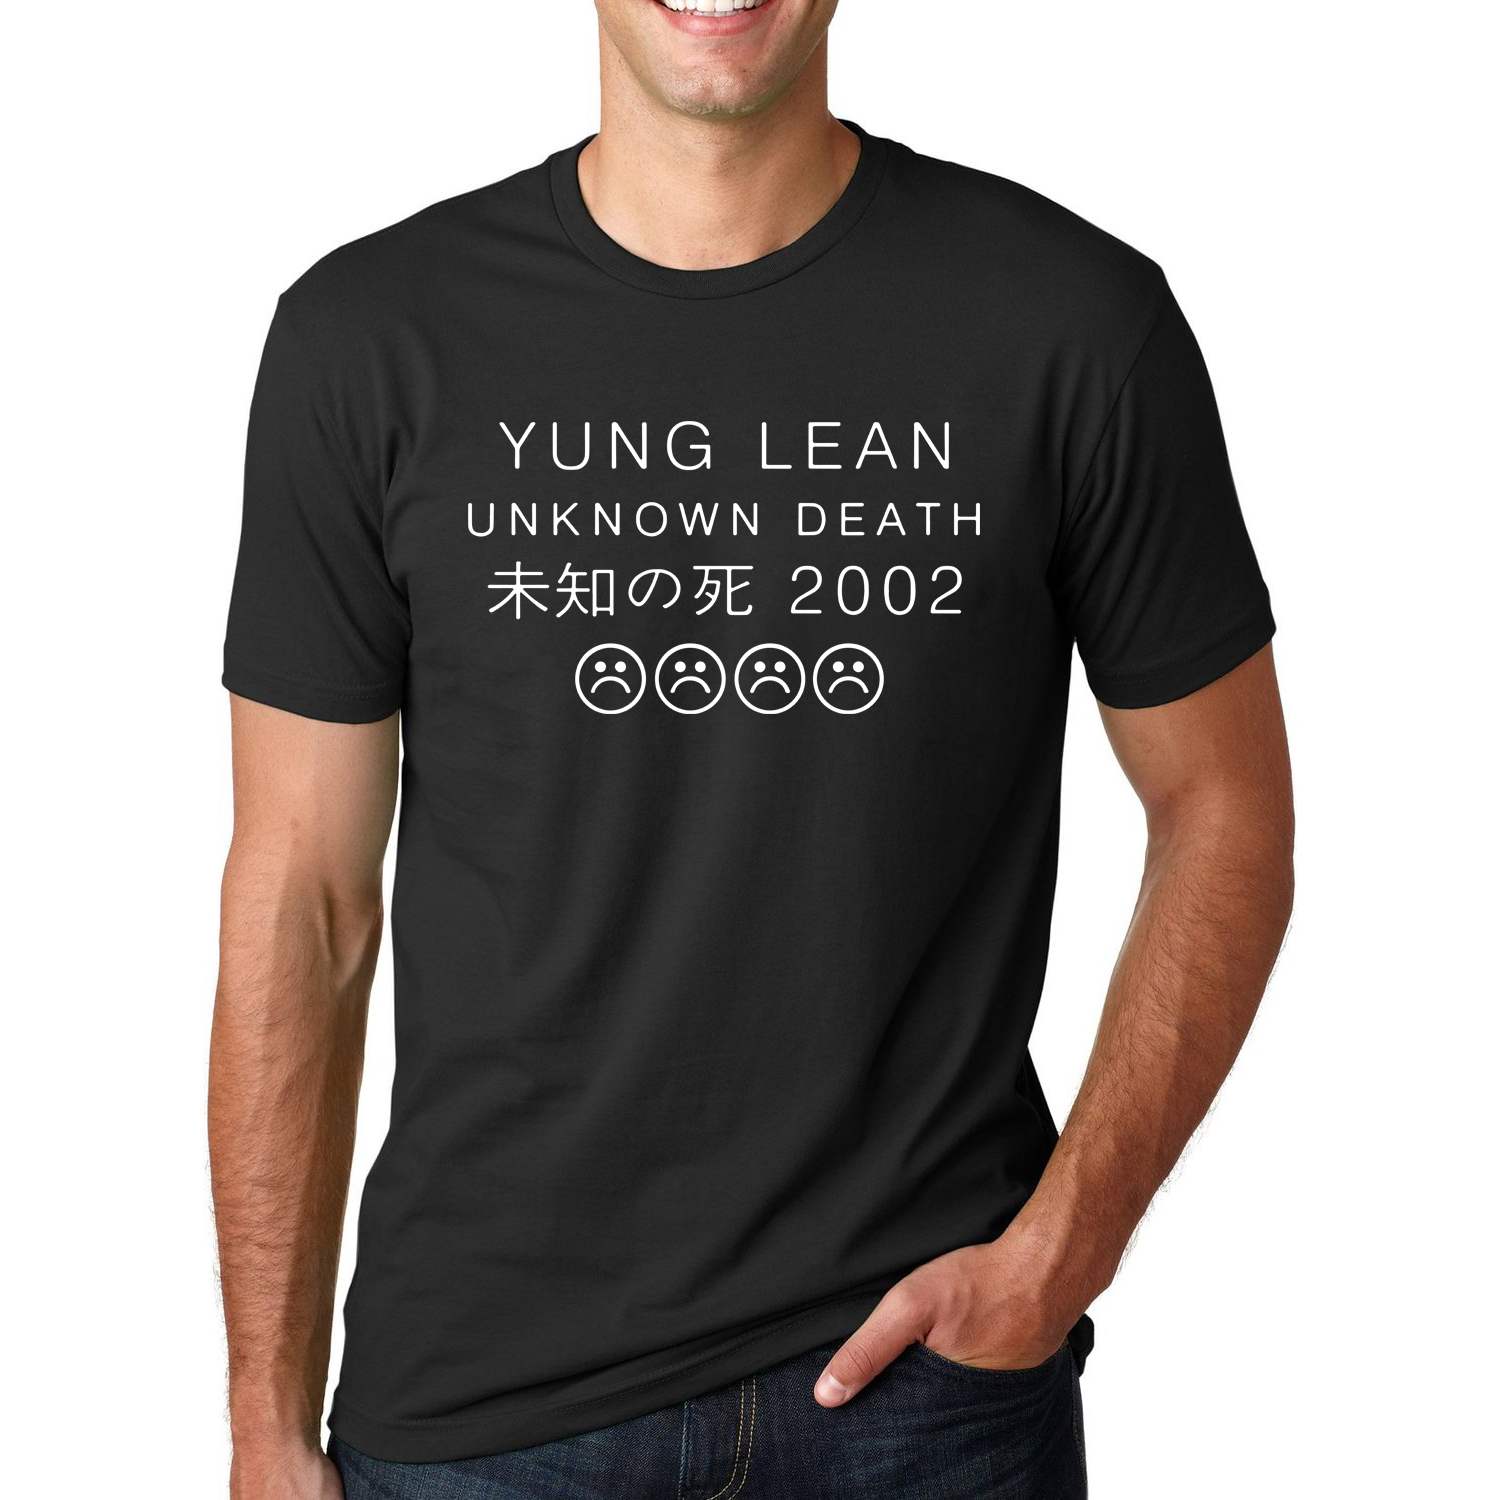 Letter Printed YUNG LEAN UNKNOWN DEATH Sad Boys T-shirts Men's Streetwear Short Sleeve O-Neck T Shirts 2019 Summer Hip Hop Tops